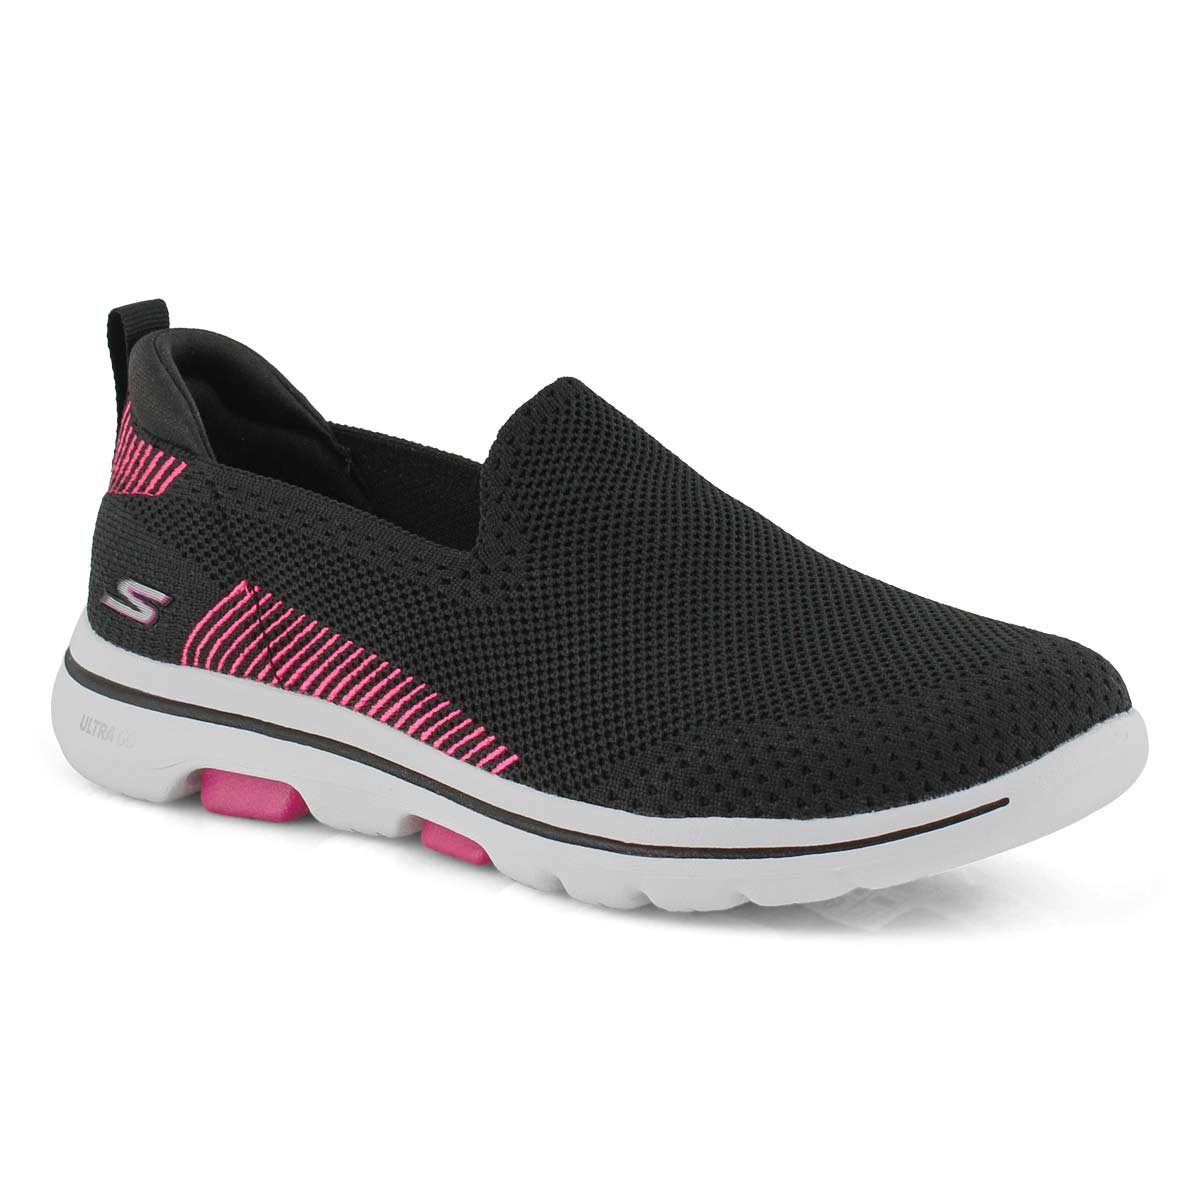 Lds GOwalk 5 Prized blk/pnk slipon shoe